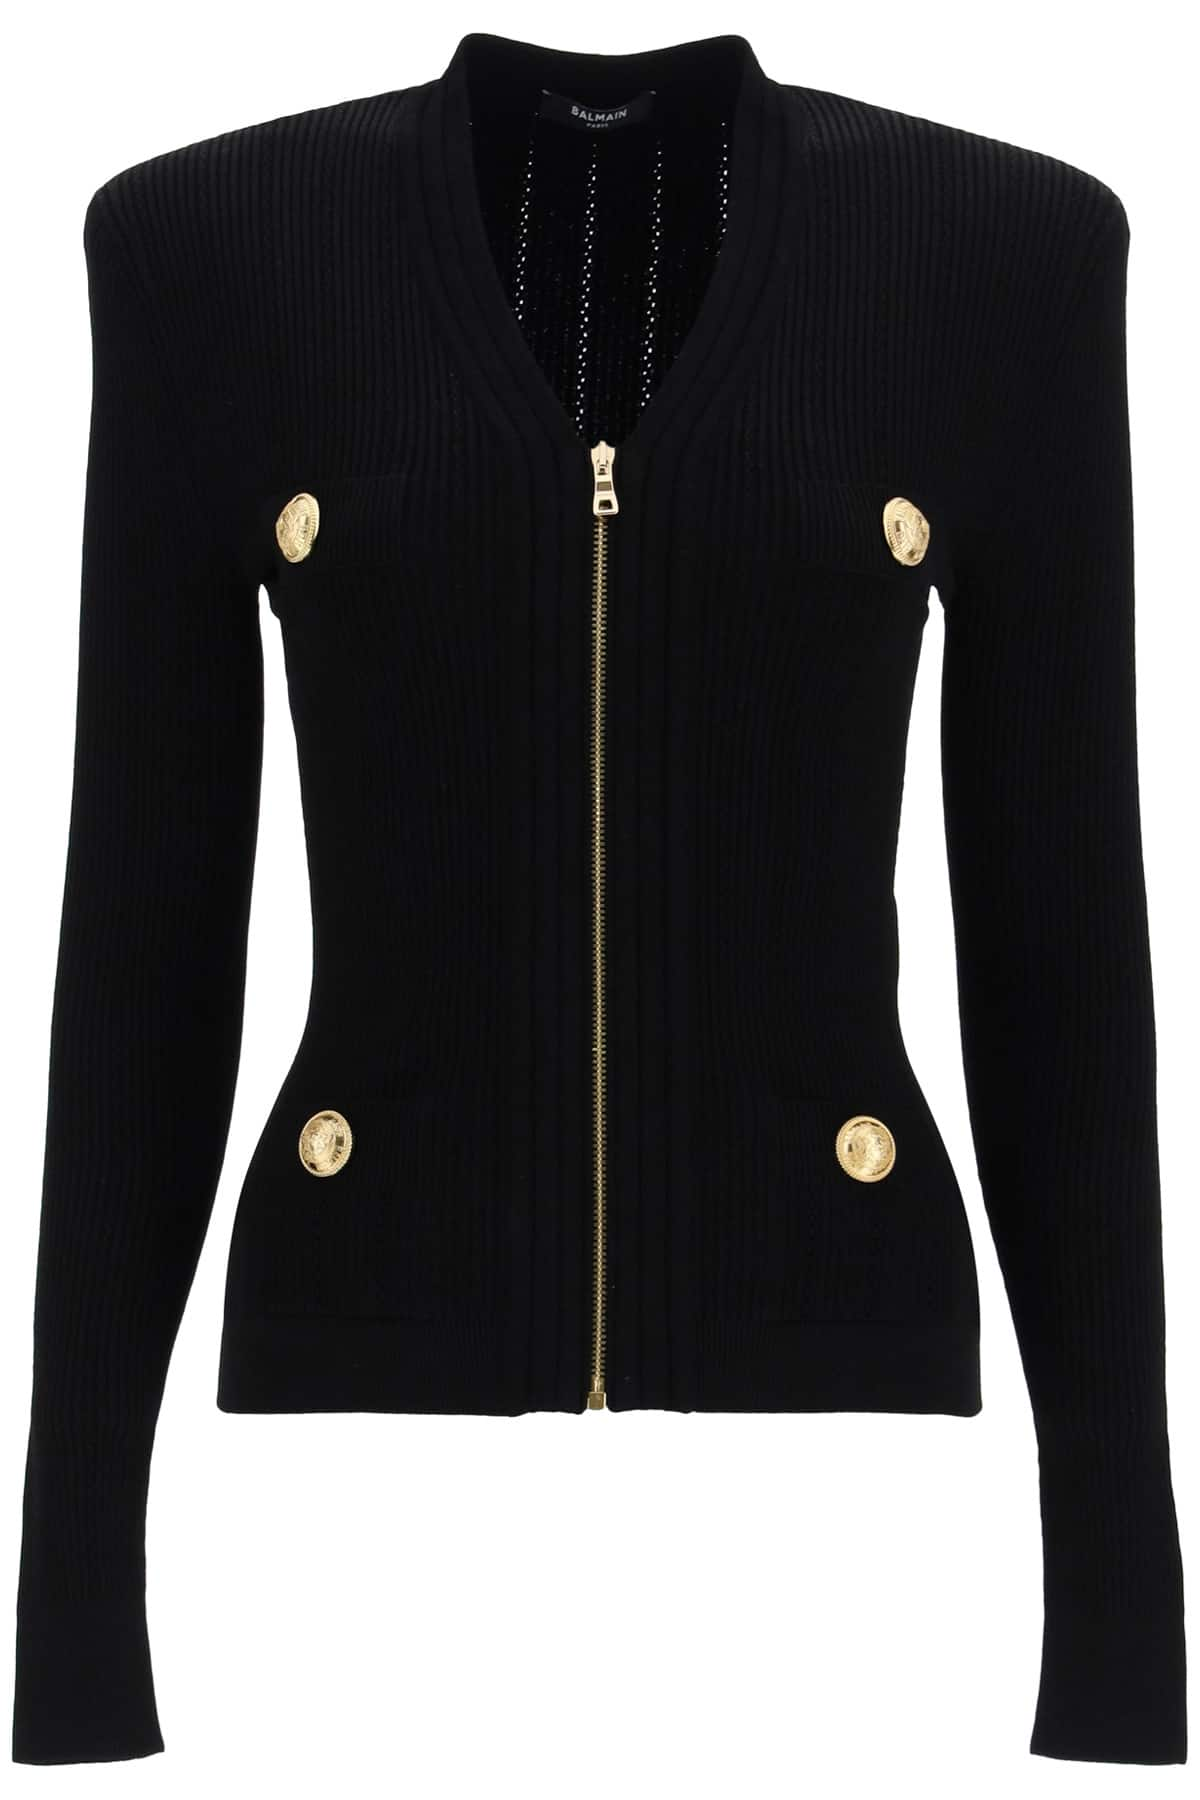 BALMAIN KNITTED CARDIGAN WITH ZIP 36 Black